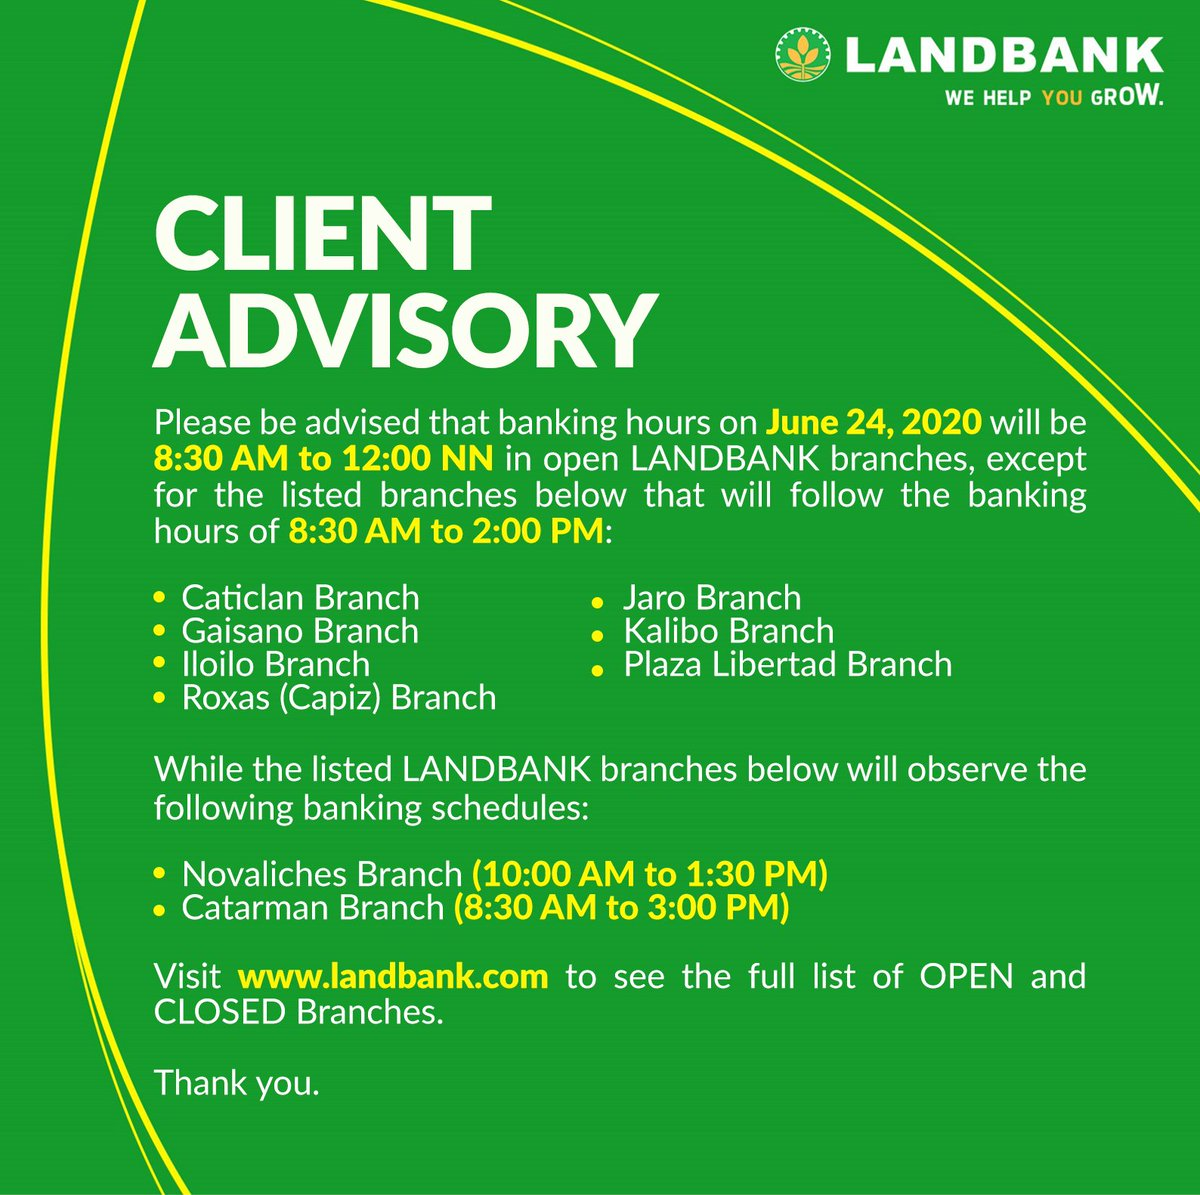 #LANDBANKClientAdvisory  To see the full list of OPEN branches, visit https://t.co/eTHWYbd2S7  To see the full list of CLOSED branches, visit https://t.co/4hstyDG3he https://t.co/xyxbJiAcgF